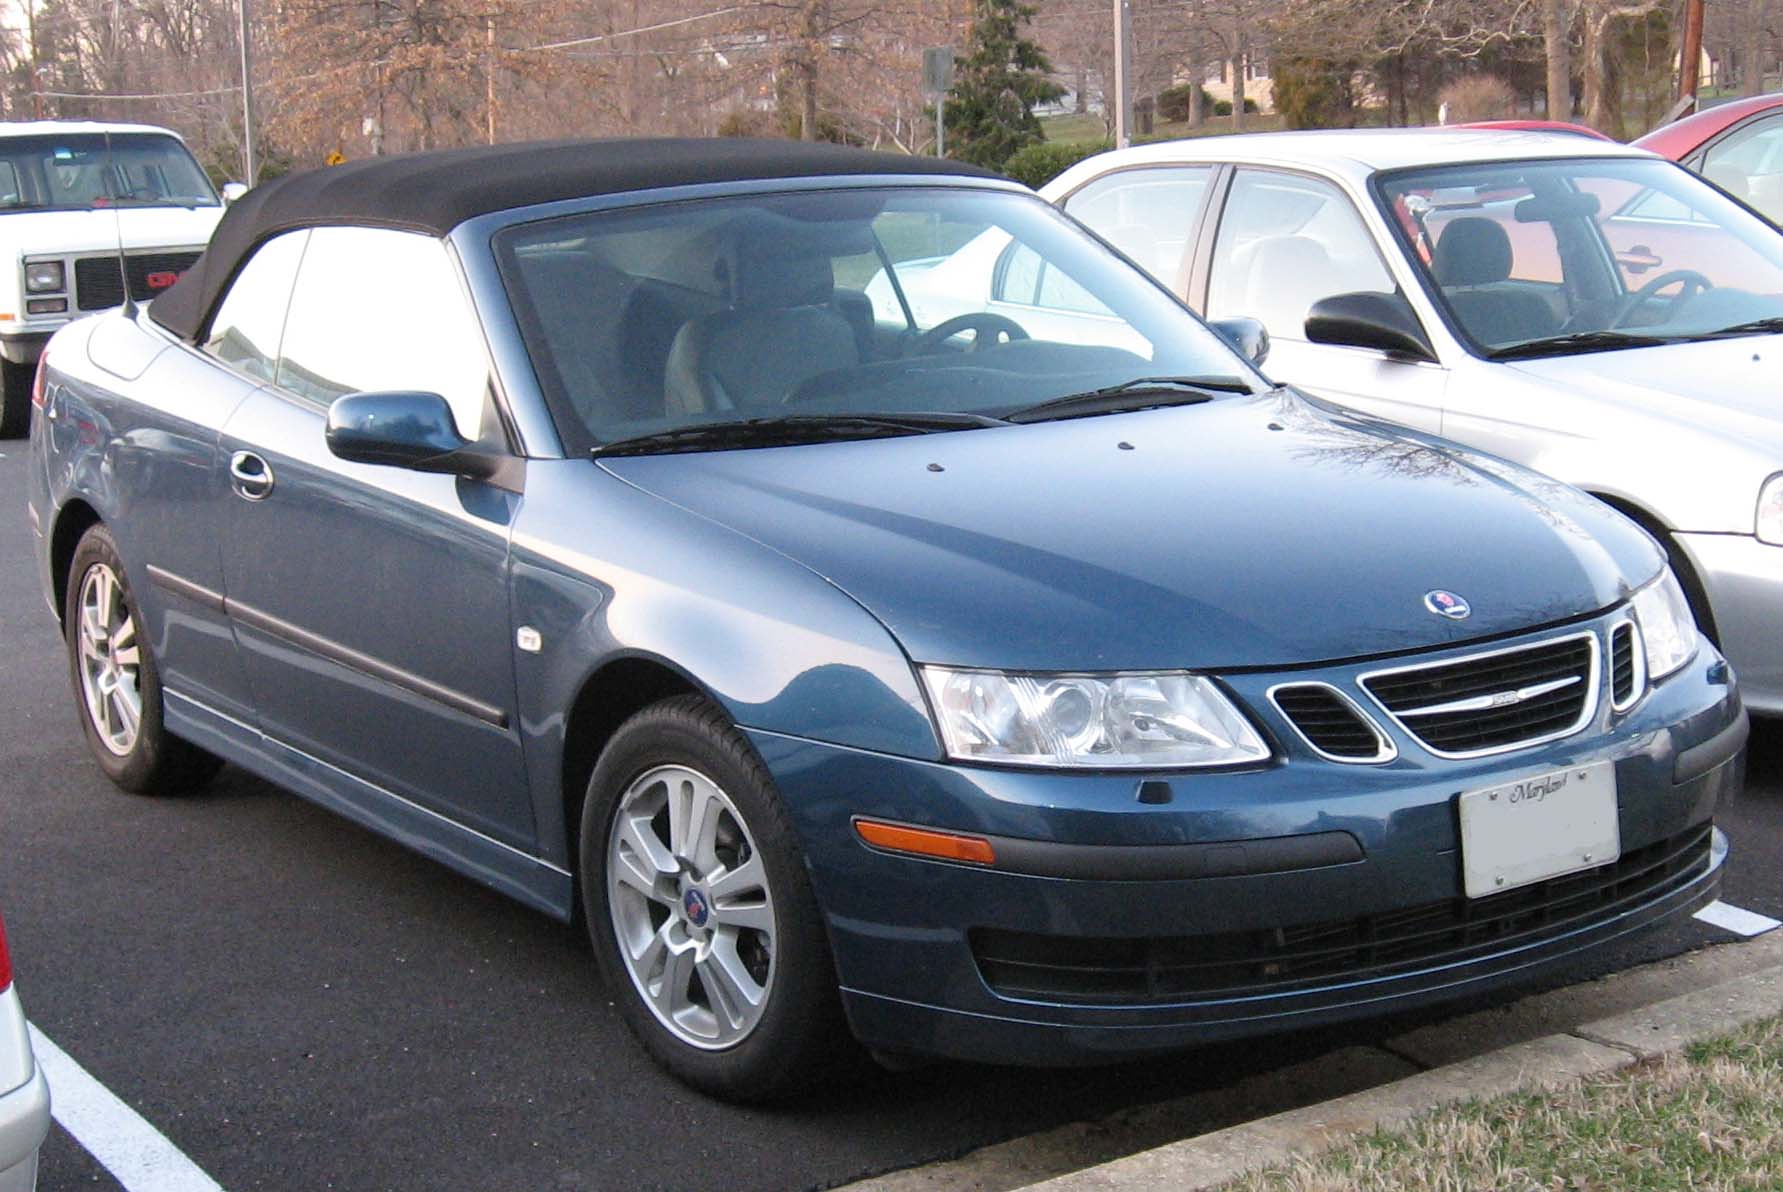 2005 saab 9 3 aero sedan 2 0l turbo manual rh carspecs us 2005 saab 9-3 infotainment manual 2005 saab 9-3 service manual pdf